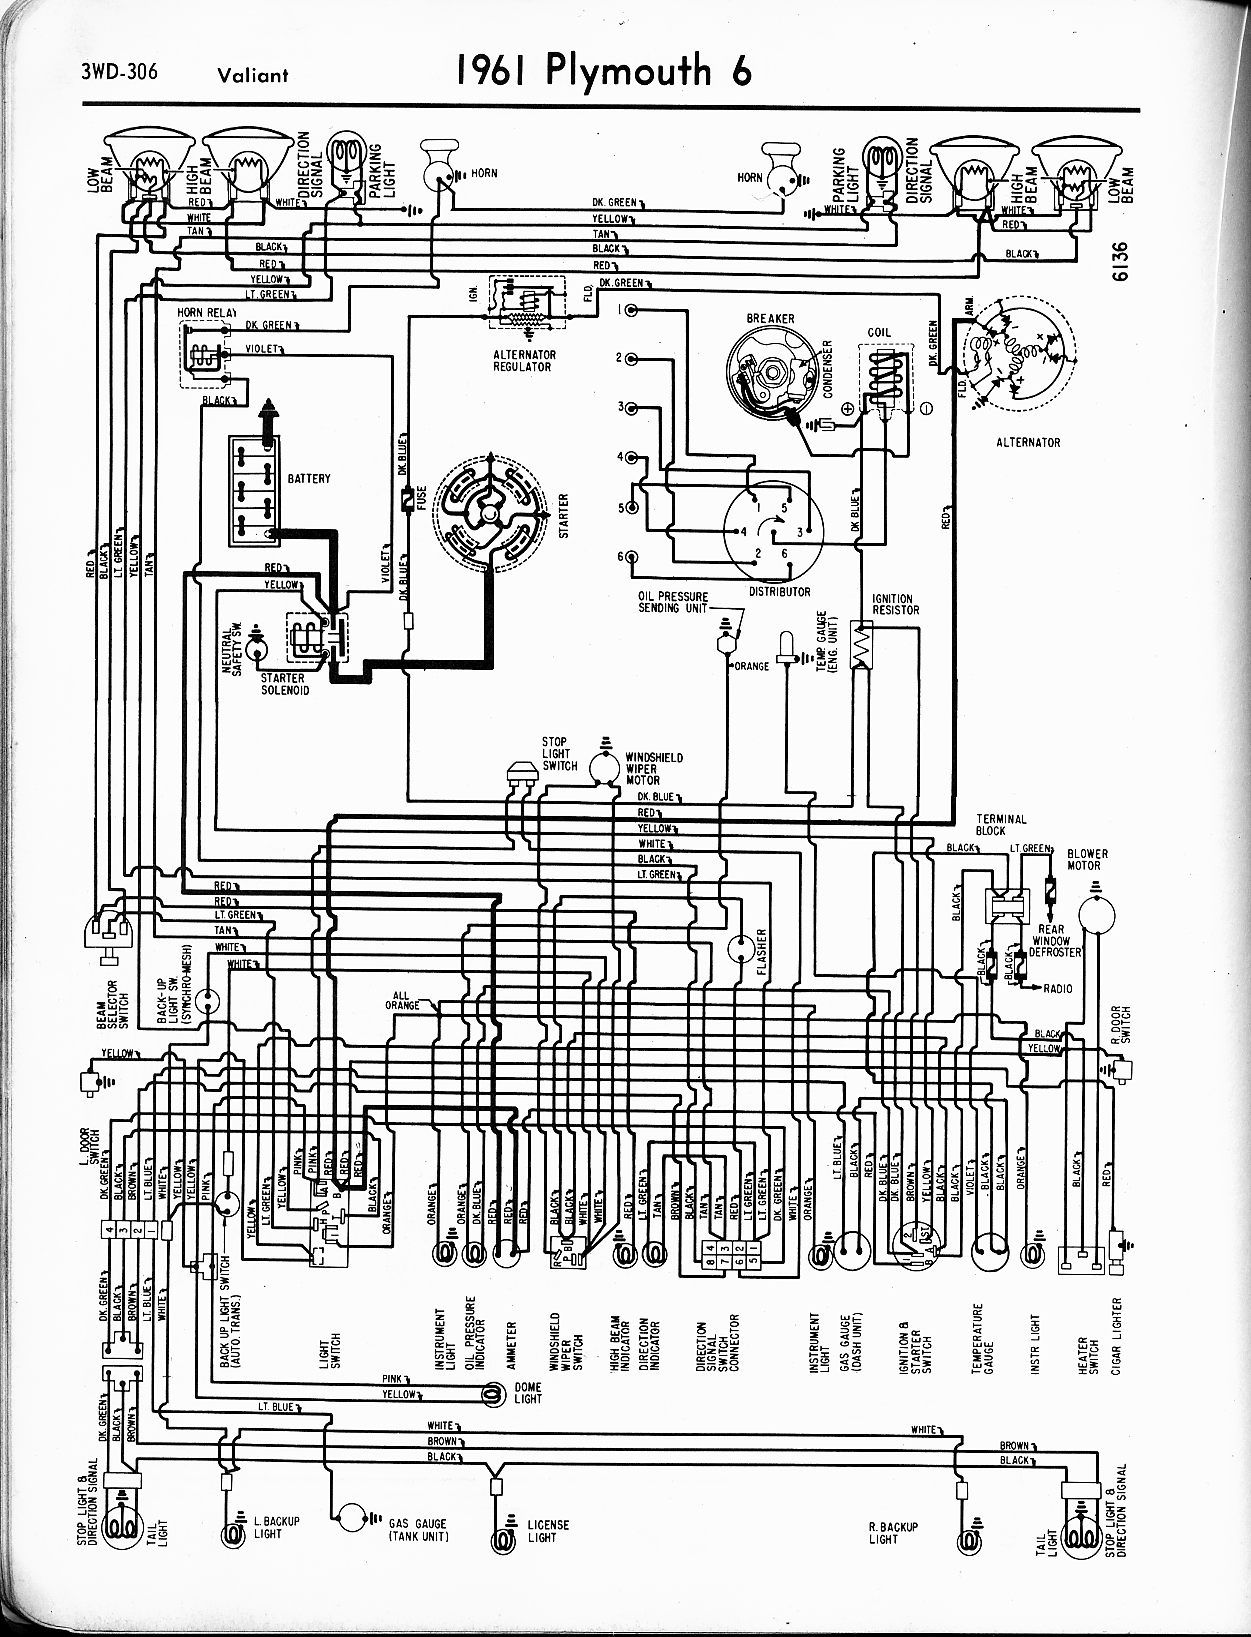 1954 Mopar Wiring Diagrams Wiring Diagram Schematics Electronic Car Diagram  1970 Plymouth Electronic Ignition Wiring Diagram